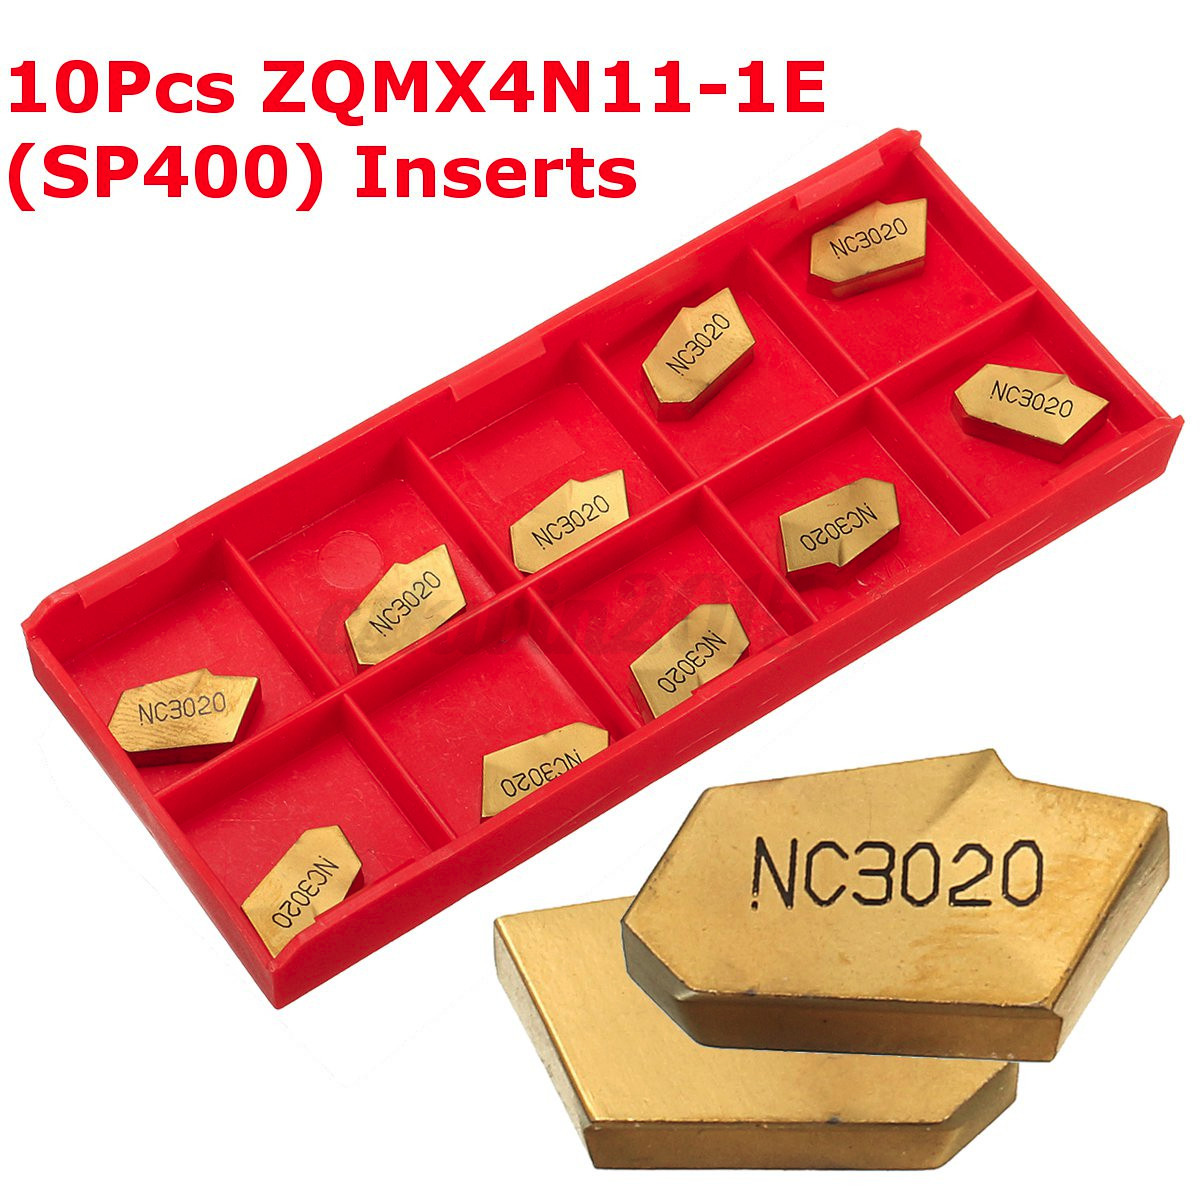 CCMT-TCMT-DCMT-39-Assorted-Indexable-Carbide-Turning-Insert-for-Lathe-Boring-Bar